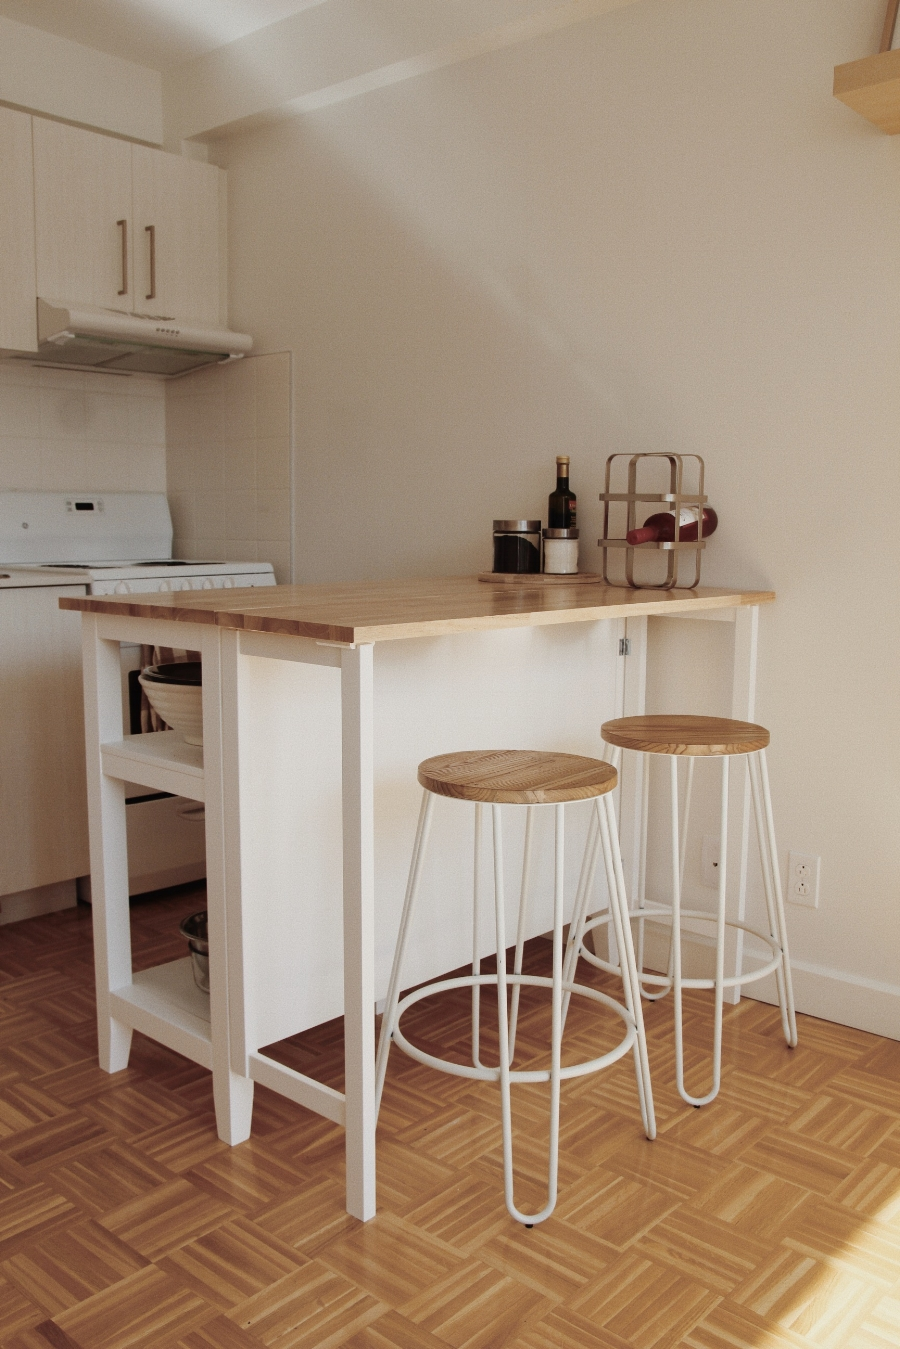 Structube Stools A Look Inside My New Apartment By Victoria Lauren Olive Iris